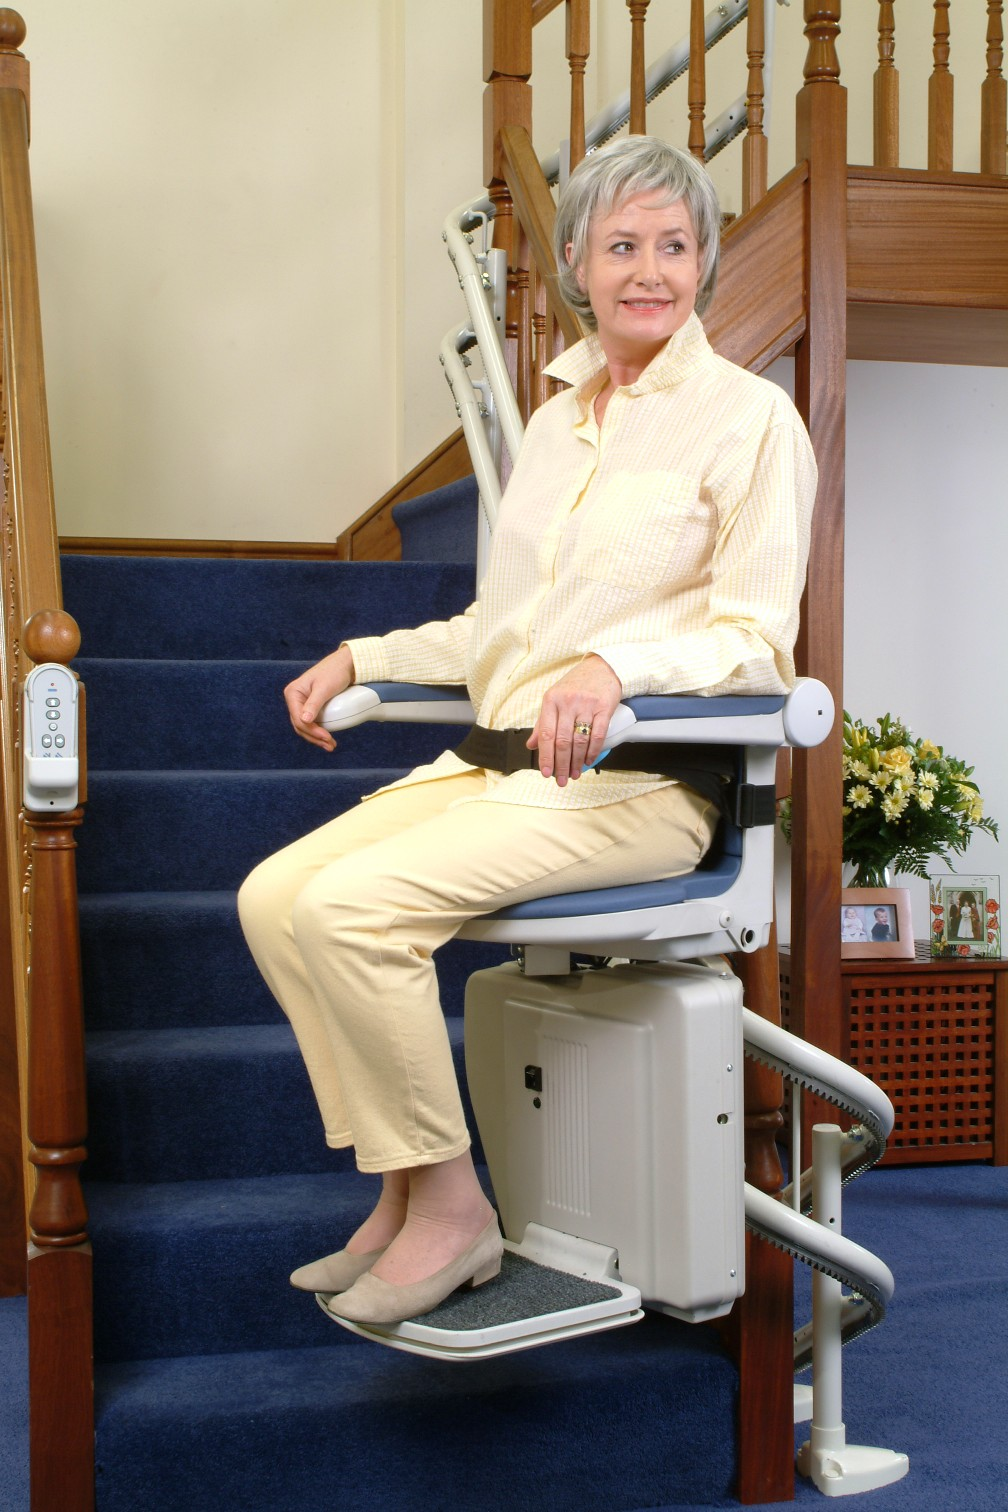 handicap stair lifts, stair chair lifts cincinnati ohio, stair lifts pennsylvania, handicap lift stair